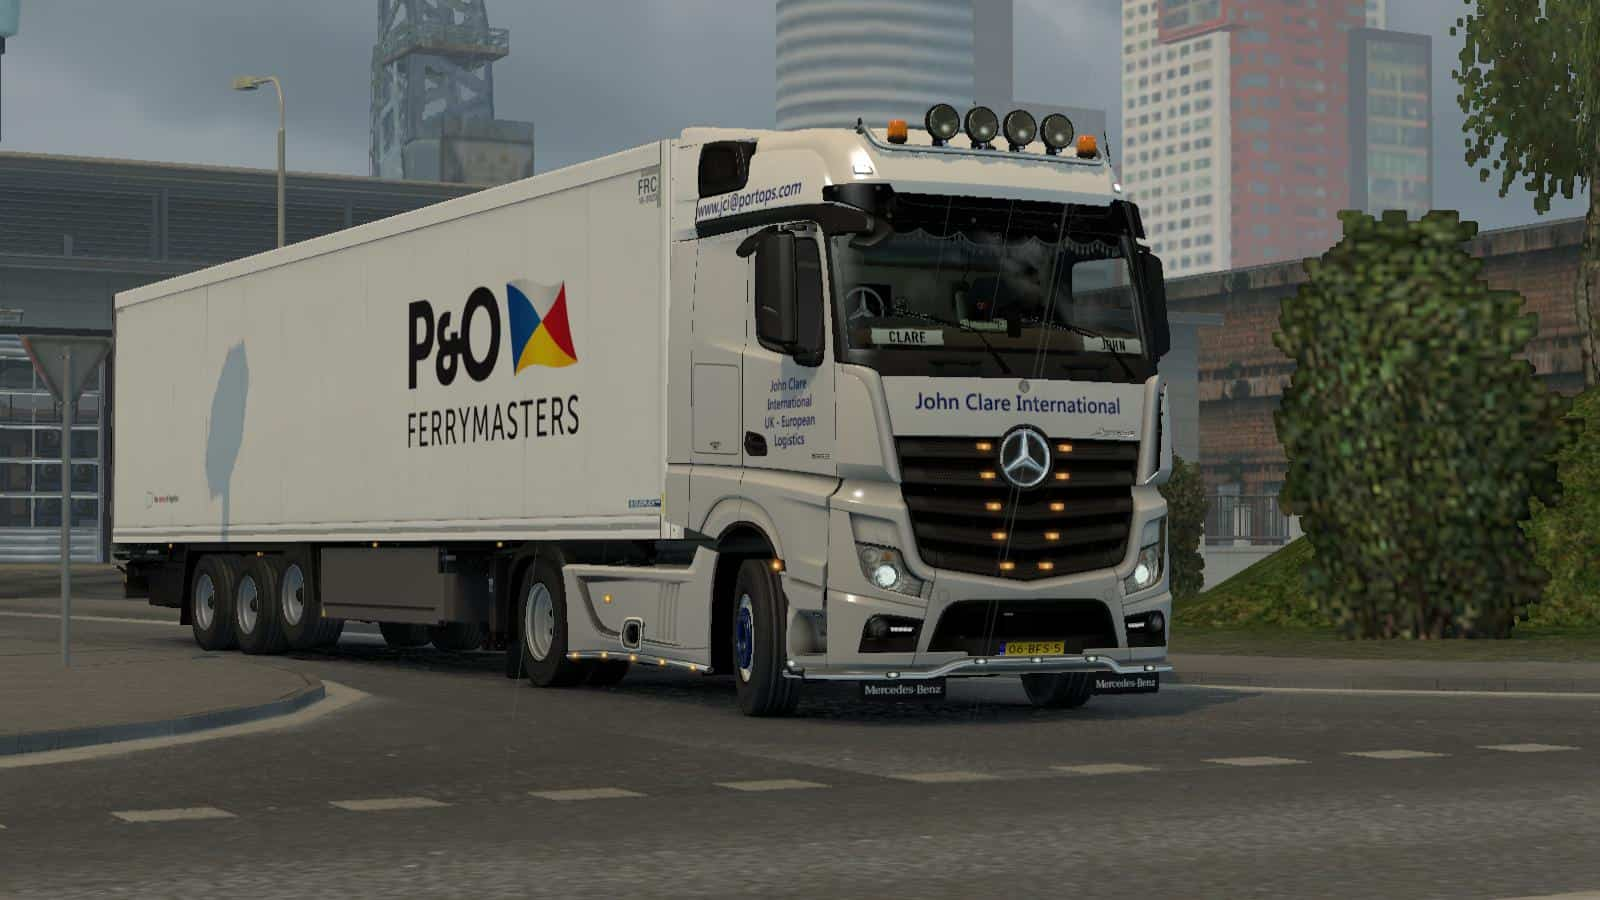 P&O FERRYMASTERS COOLINER 1 35 ETS2 - American Truck